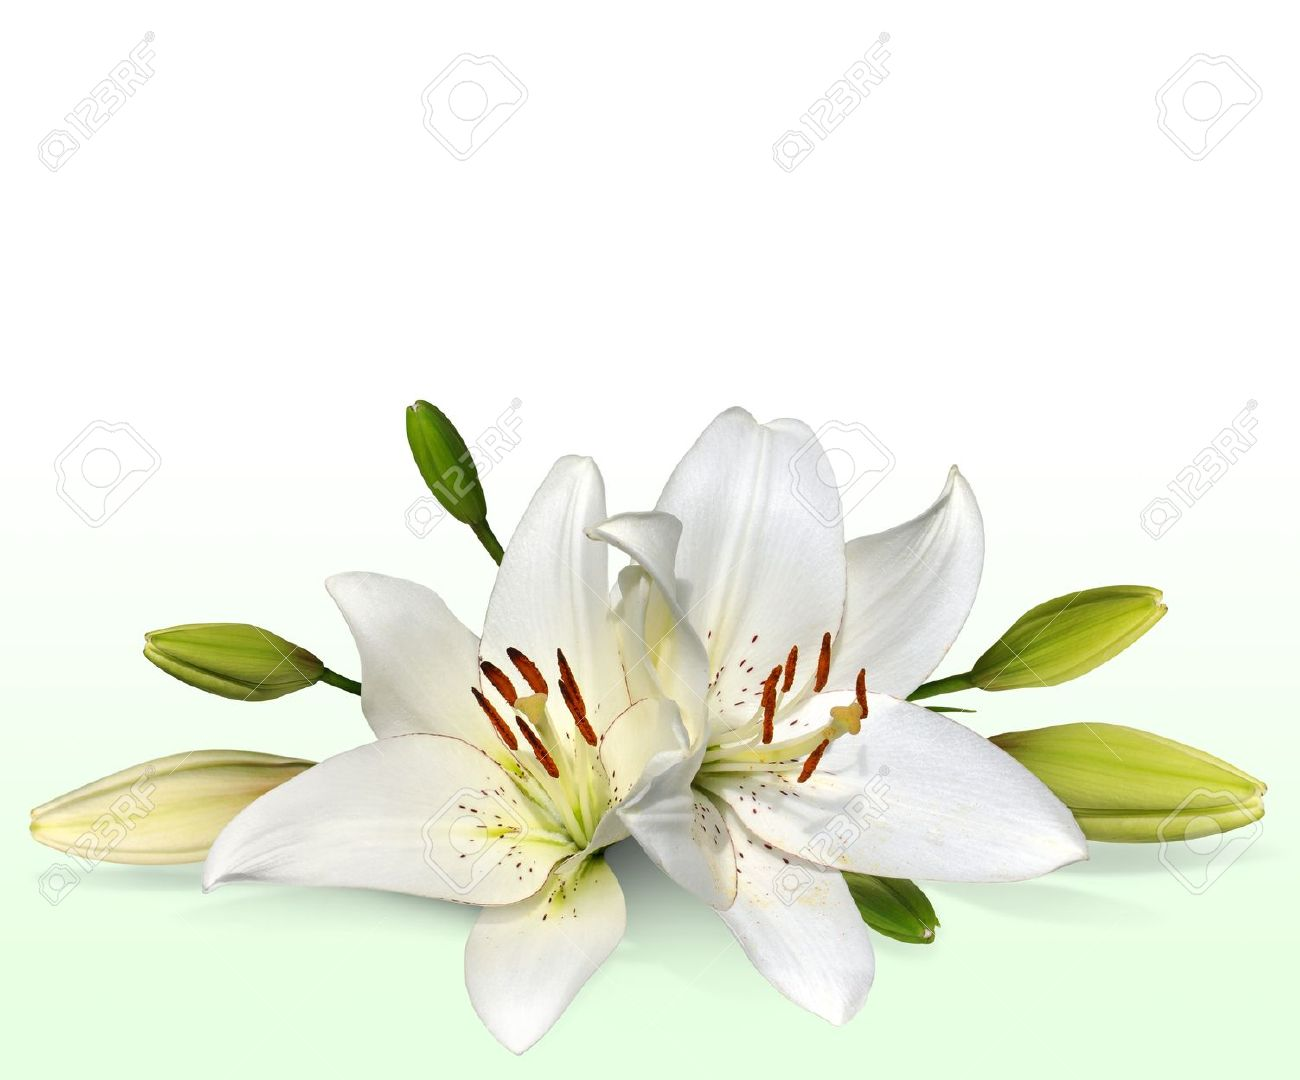 Easter lily flowers also known as november lilies stock photo easter lily flowers also known as november lilies stock photo 12782618 izmirmasajfo Gallery